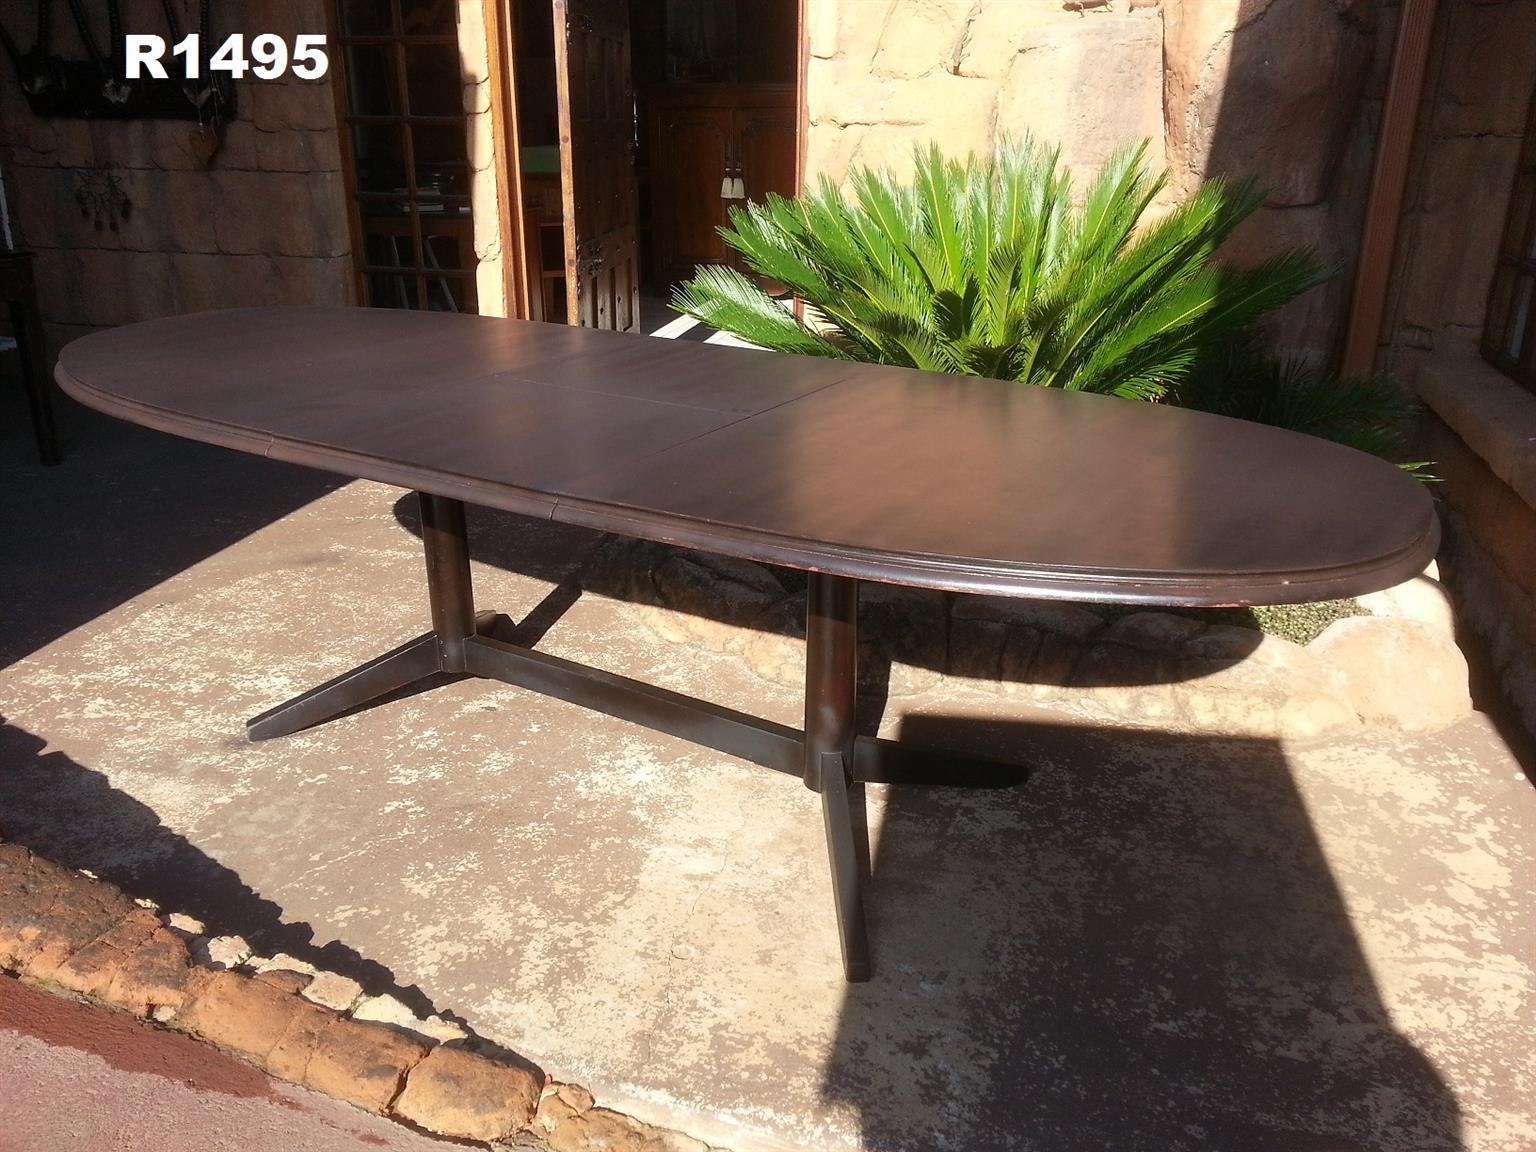 6-8 Seater Oval Teak Dining Table (2125x1060x775)